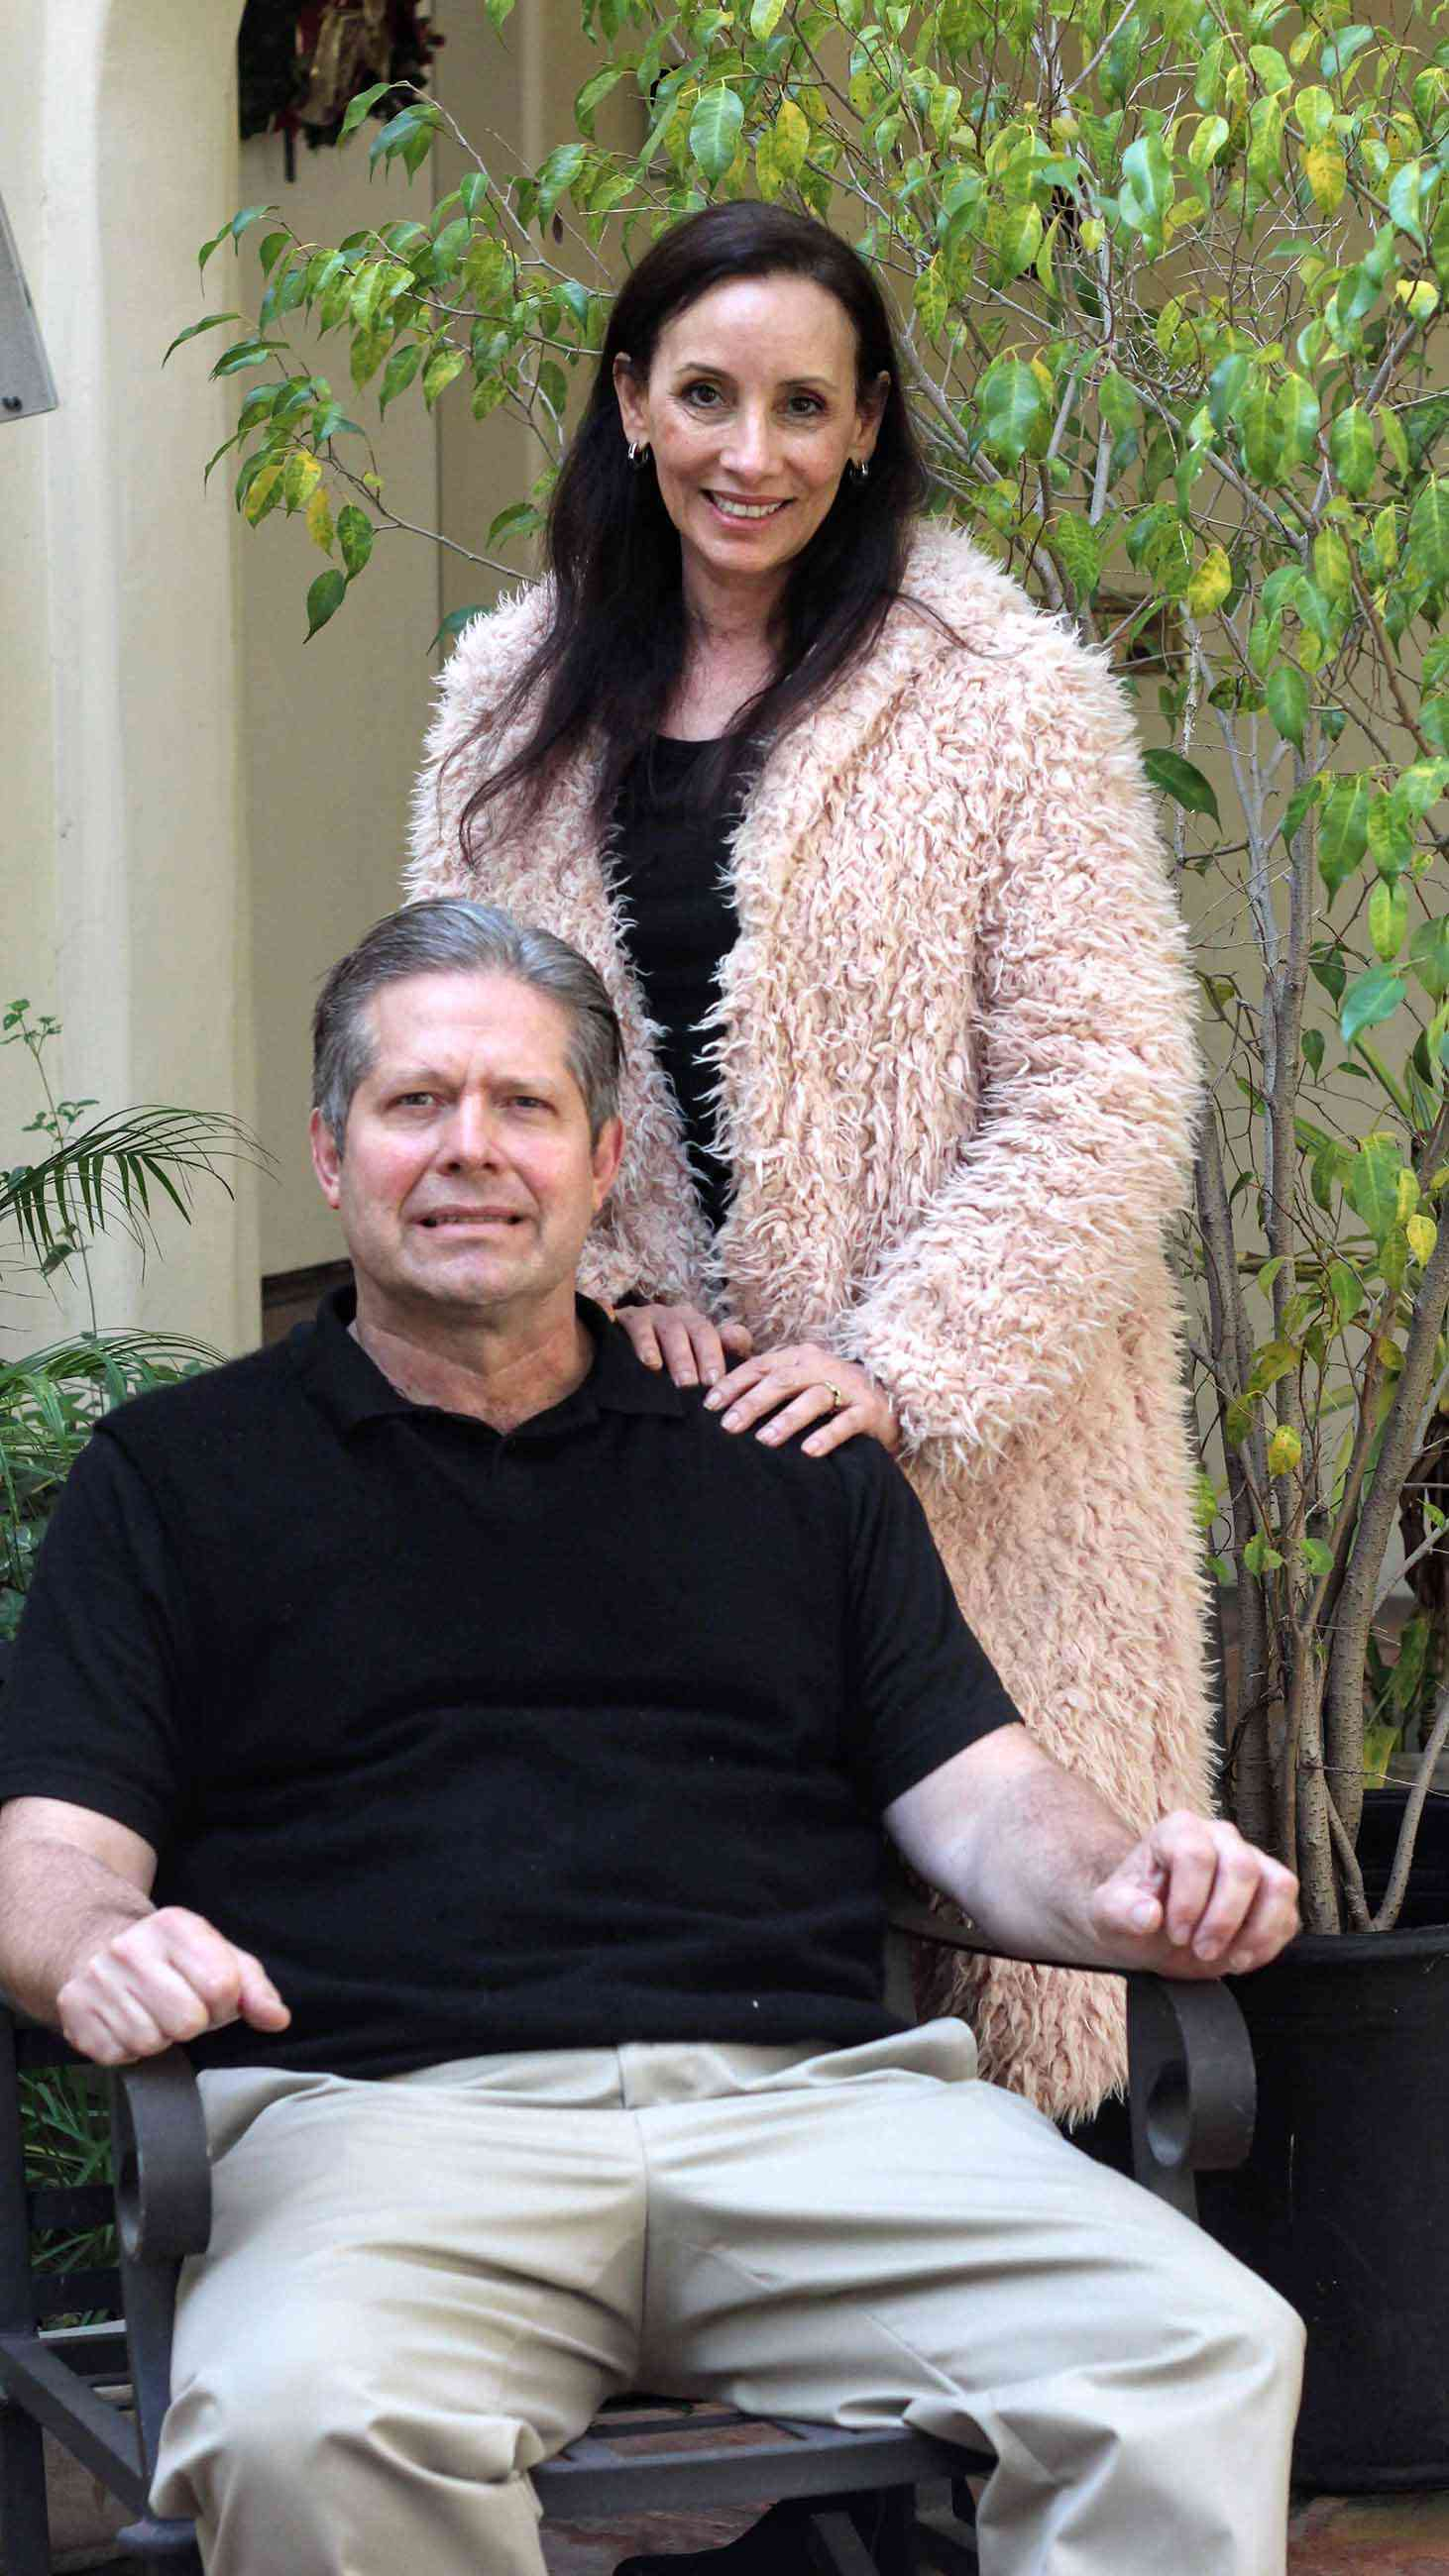 In 2016, Anthony Andrews and his wife Mona were told he likely had CTE, a neurodegenerative disorder caused by repeated head impacts.  (Photo: Elizabeth Svoboda)